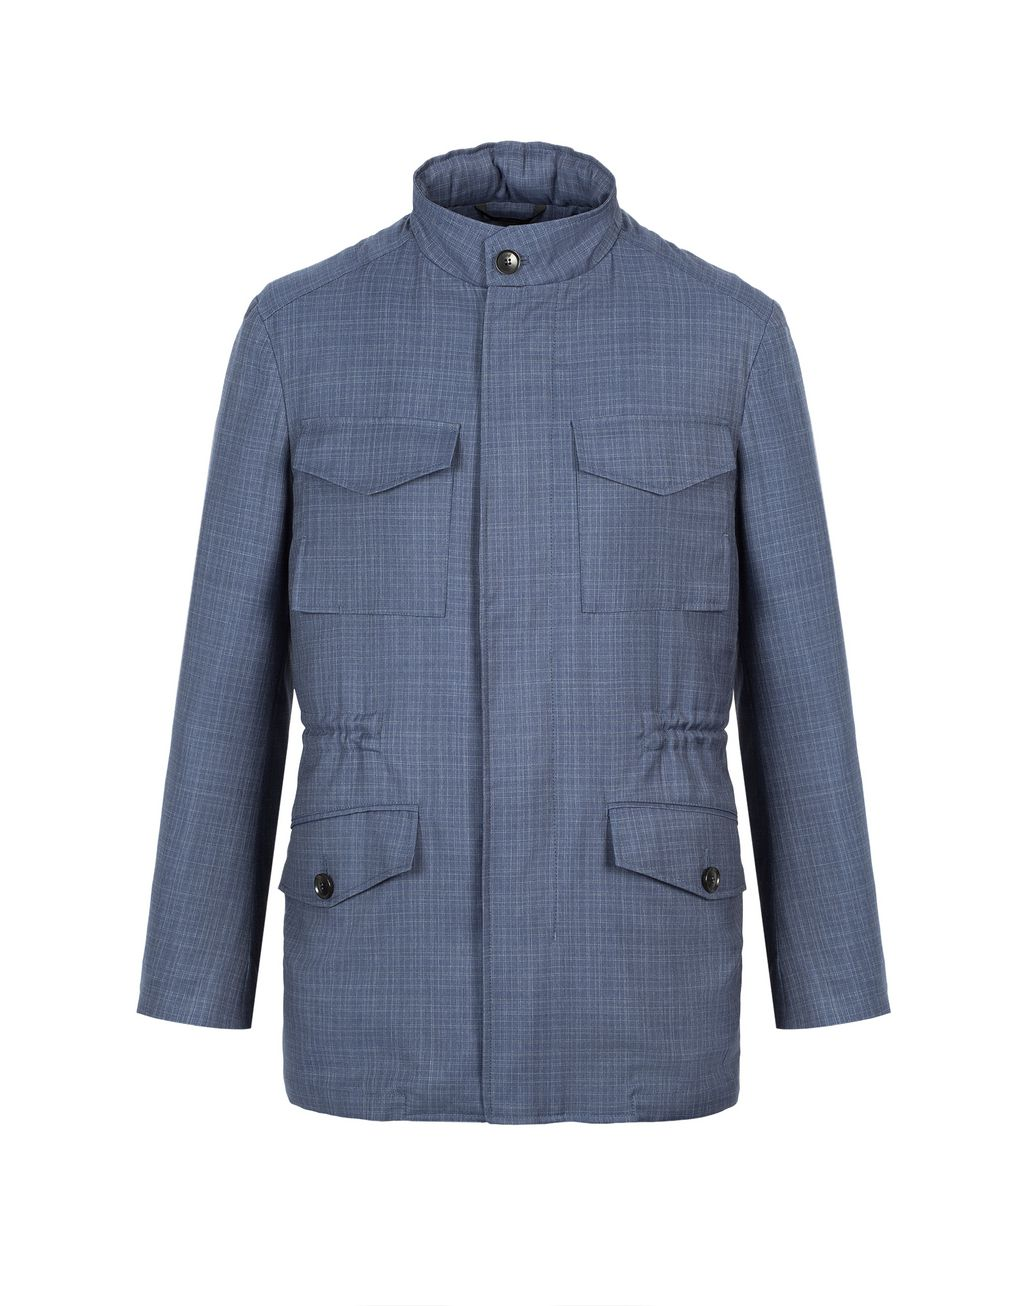 BRIONI Navy-Blue Check Trans-Seasonal Field Jacket Outerwear Man f